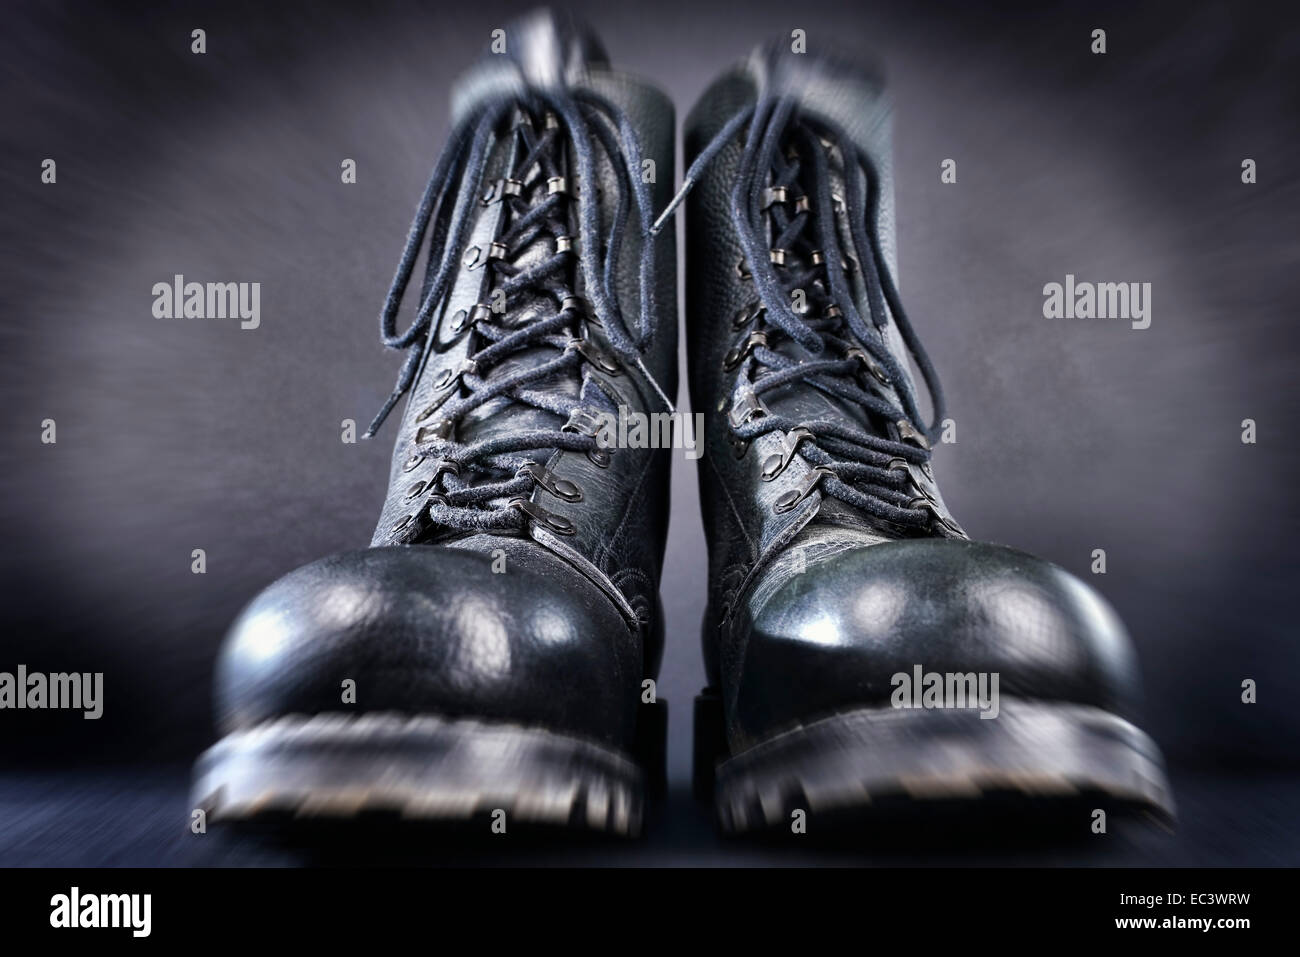 Combat boots, right-wing extremism - Stock Image